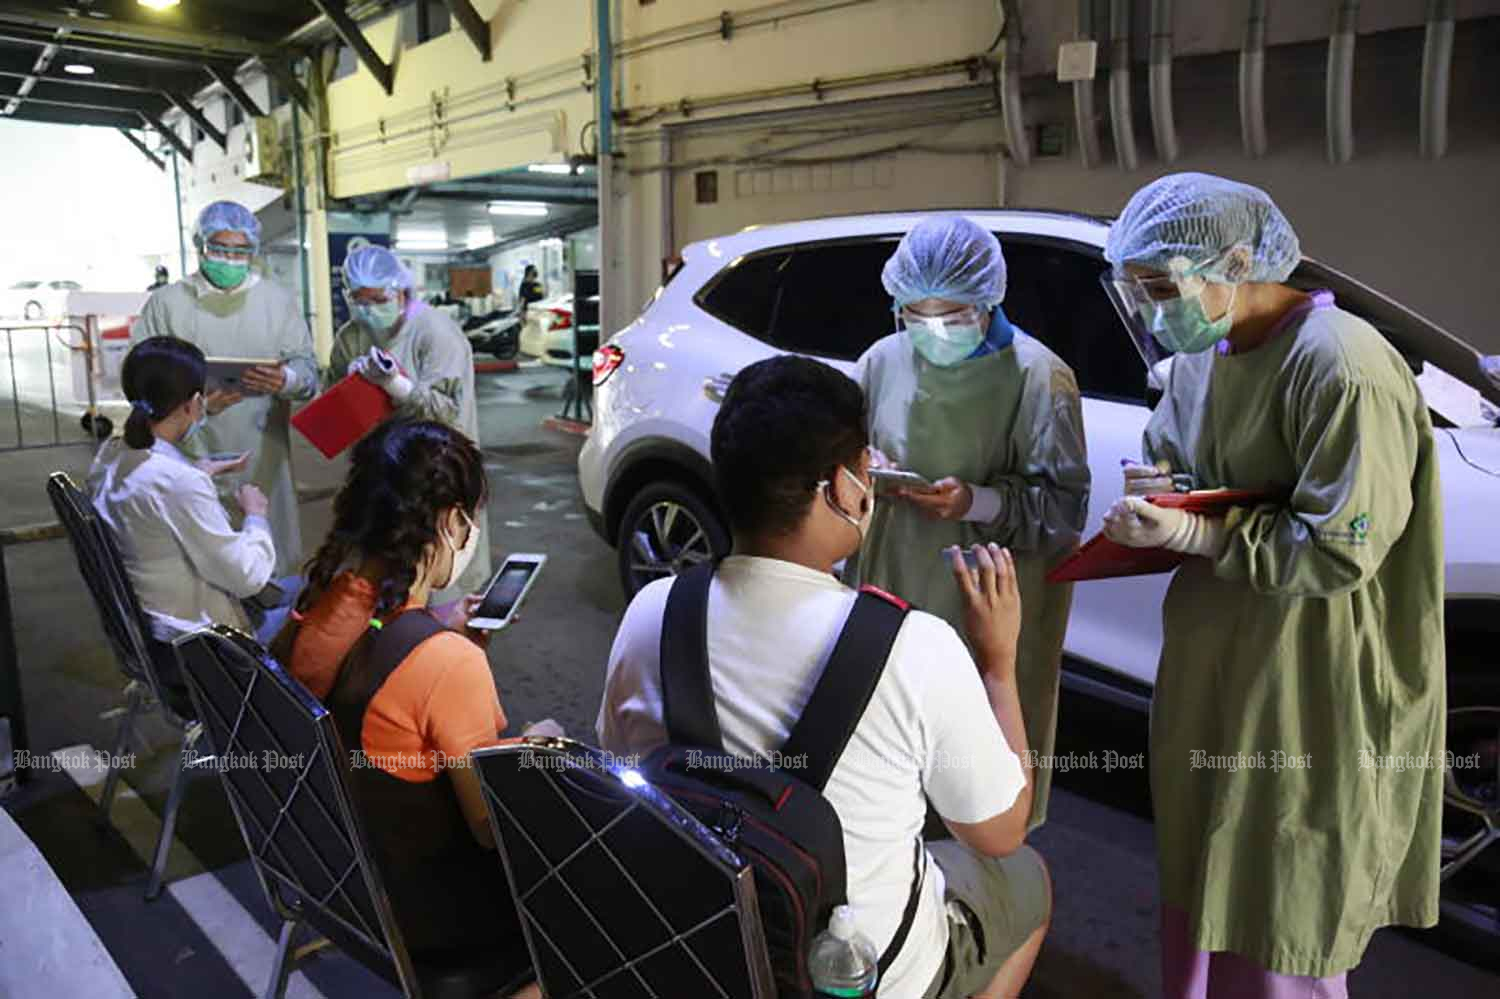 Waiting to give samples at a drive-through Covid-19 testing unit at Vibhavadi Hospital in Bangkok on Tuesday. (Photo: Arnun Chonmahatrakool)